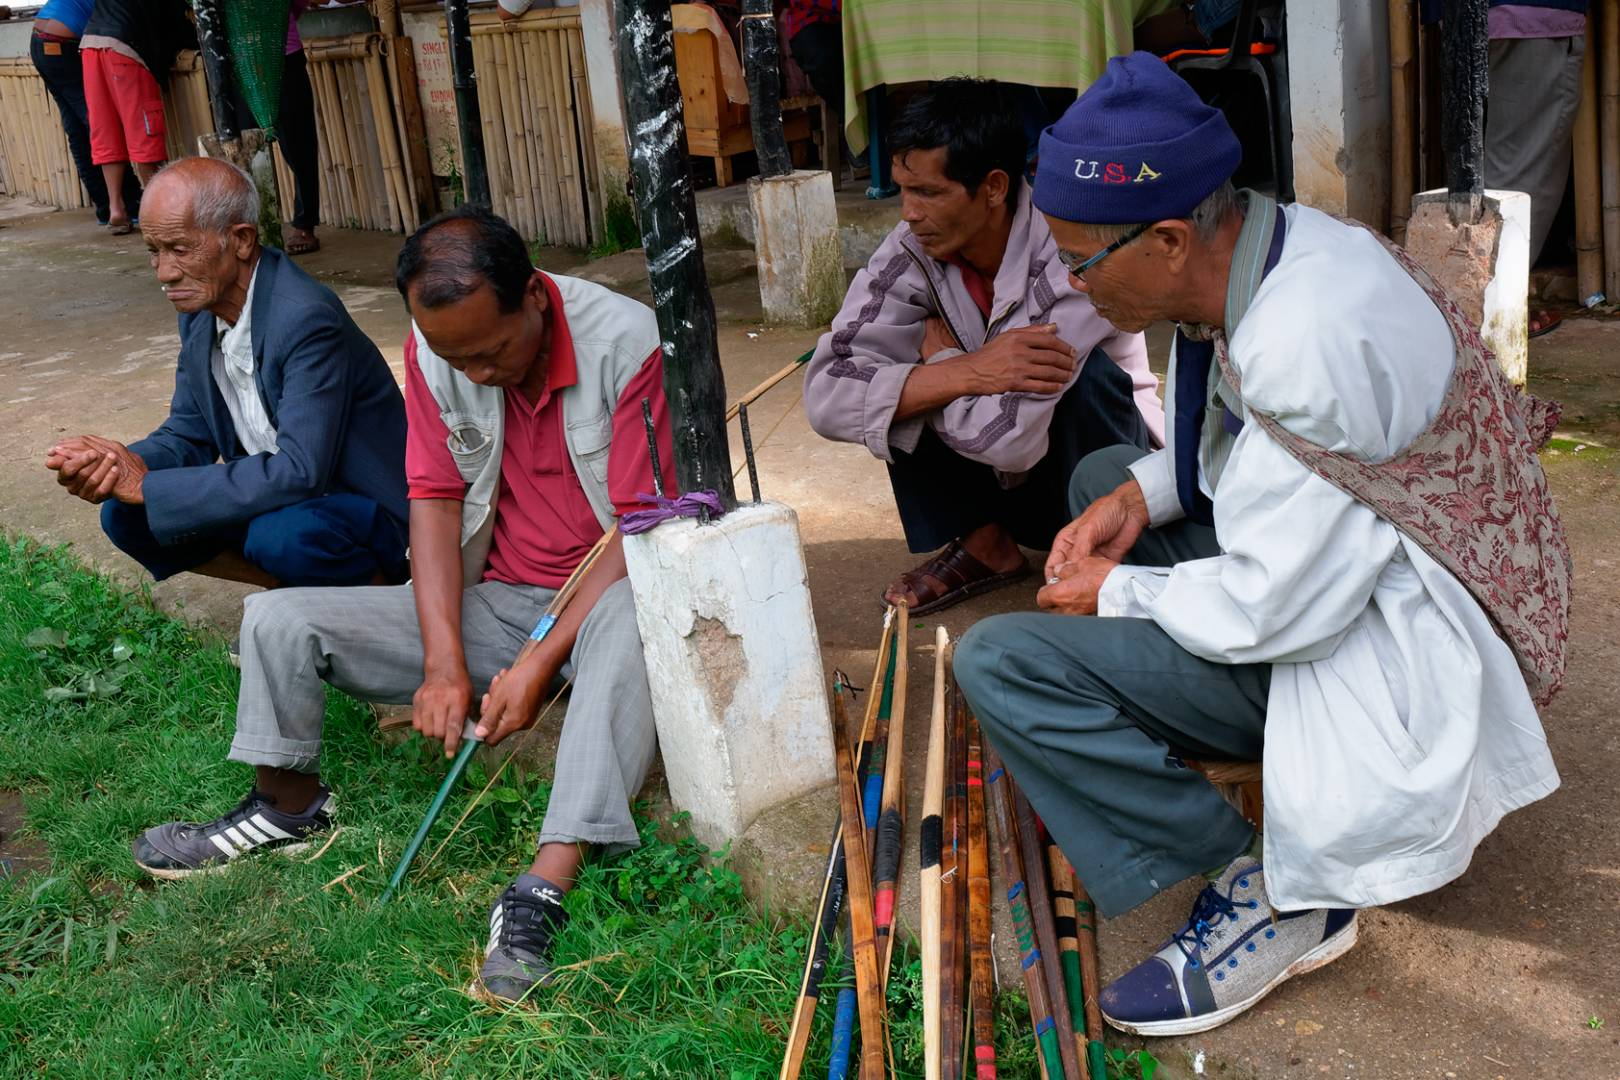 An archer trims his bow before the start of the contest. Clubs compete against each other every day in an empty lot near the Polo Grounds in the capital, Shillong